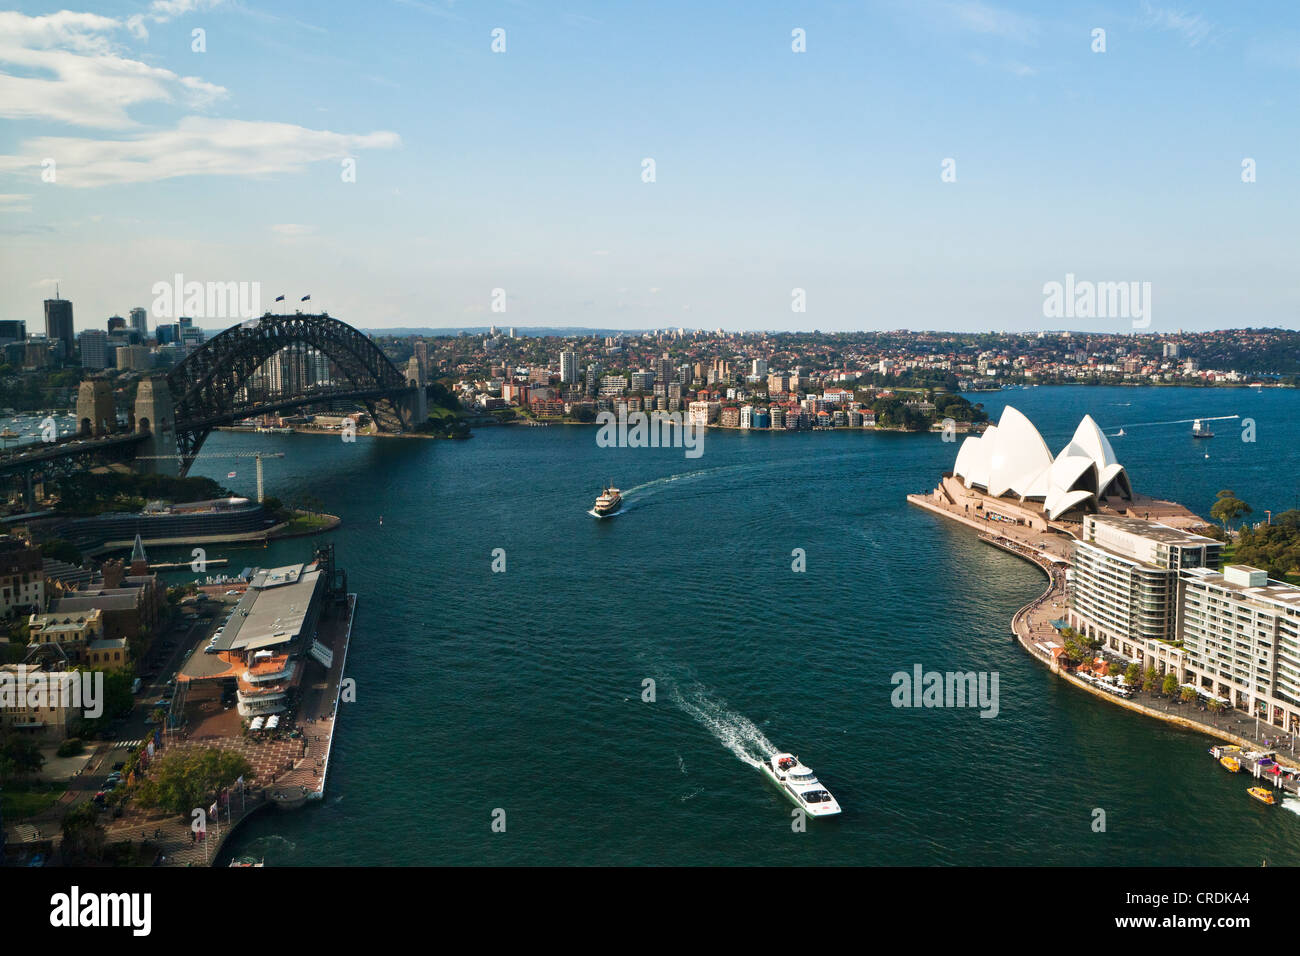 Sydney Cove, with the Opera House and Sydney Harbour Bridge in the harbour, Sydney, New South Wales, Australia - Stock Image